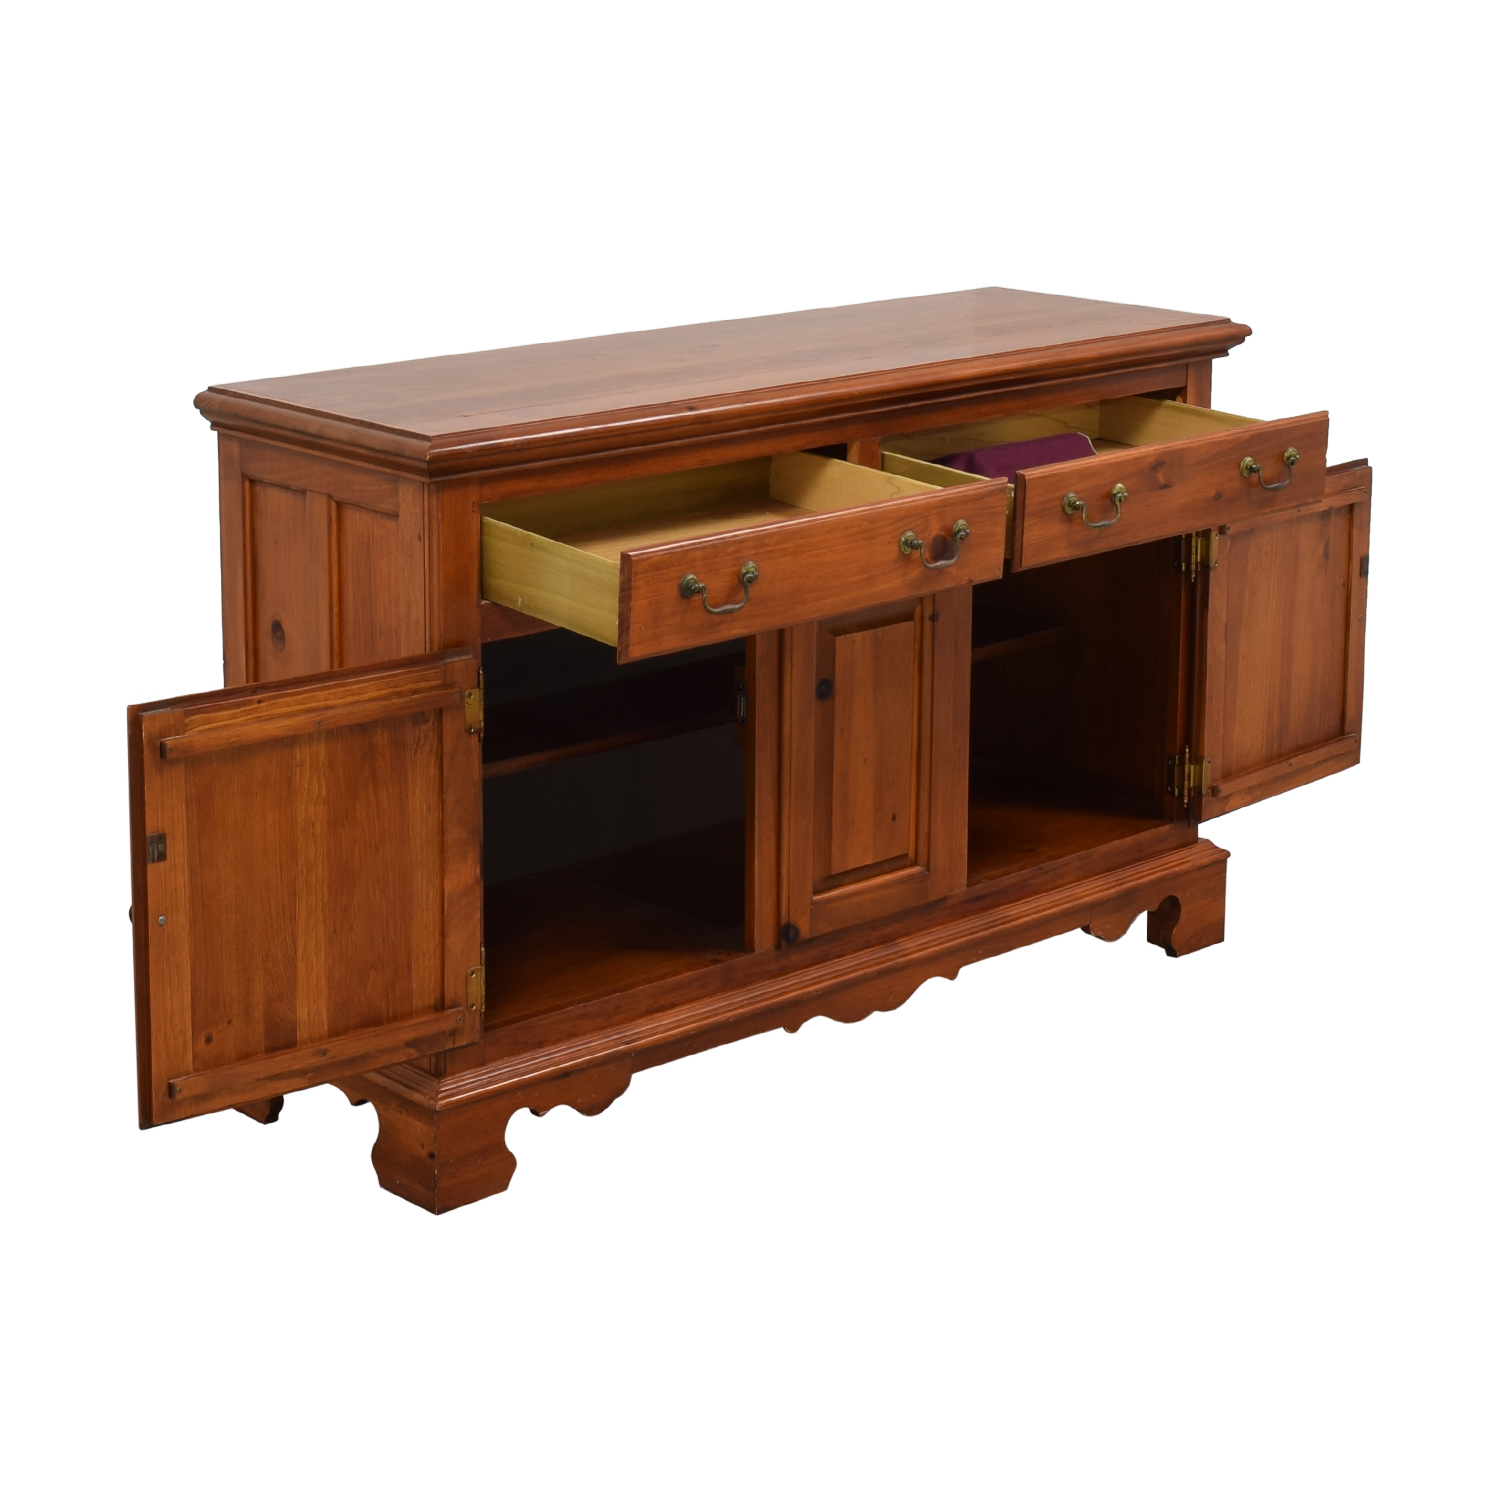 Broyhill Serving Sideboard Broyhill Furniture